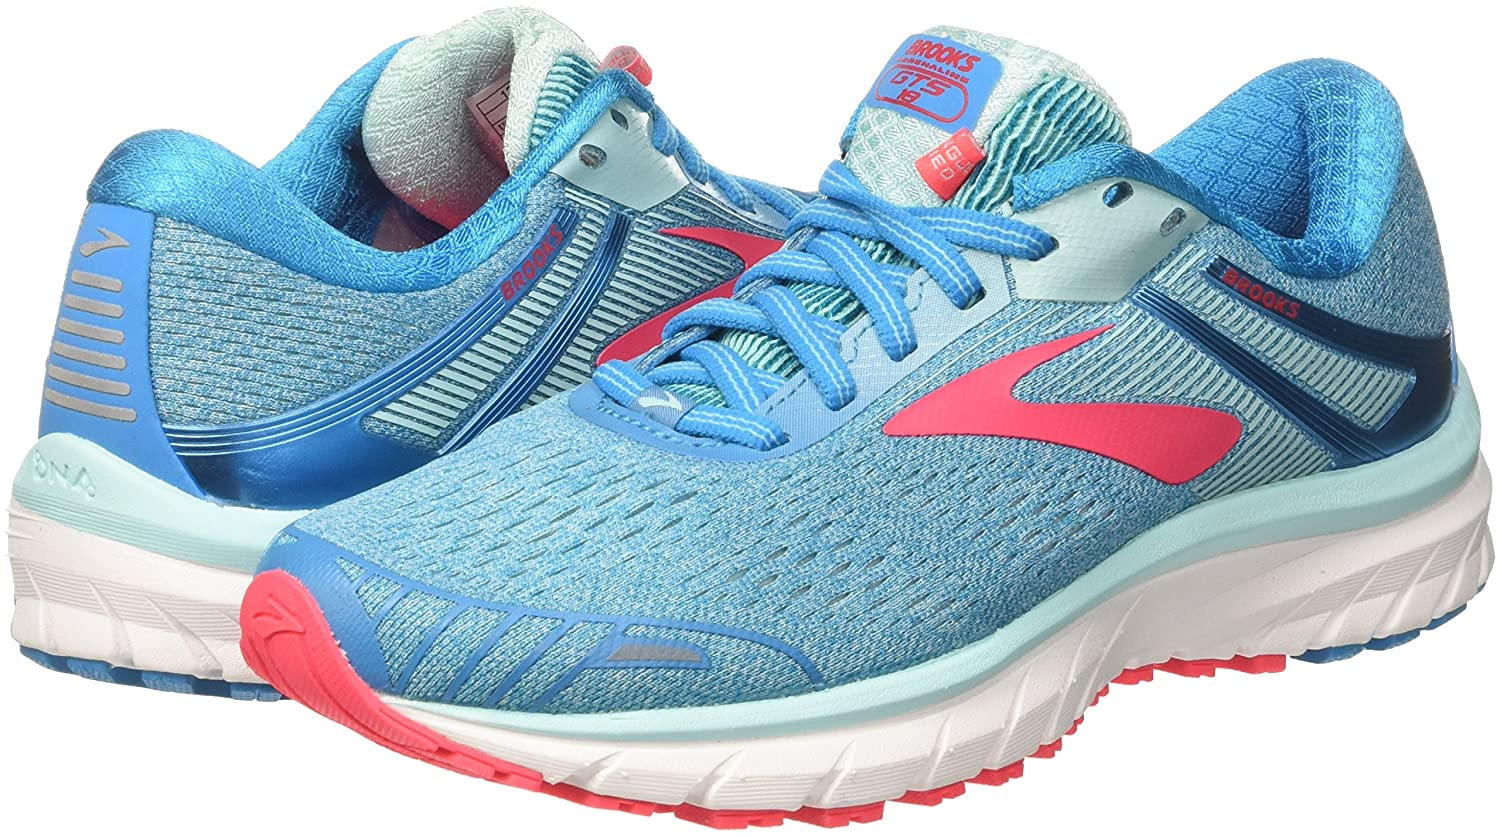 Brooks Womens 11.5 Adrenaline GTS 18 B071NSPF4P 11.5 Womens B(M) US|Blue/Mint/Pink df45ff